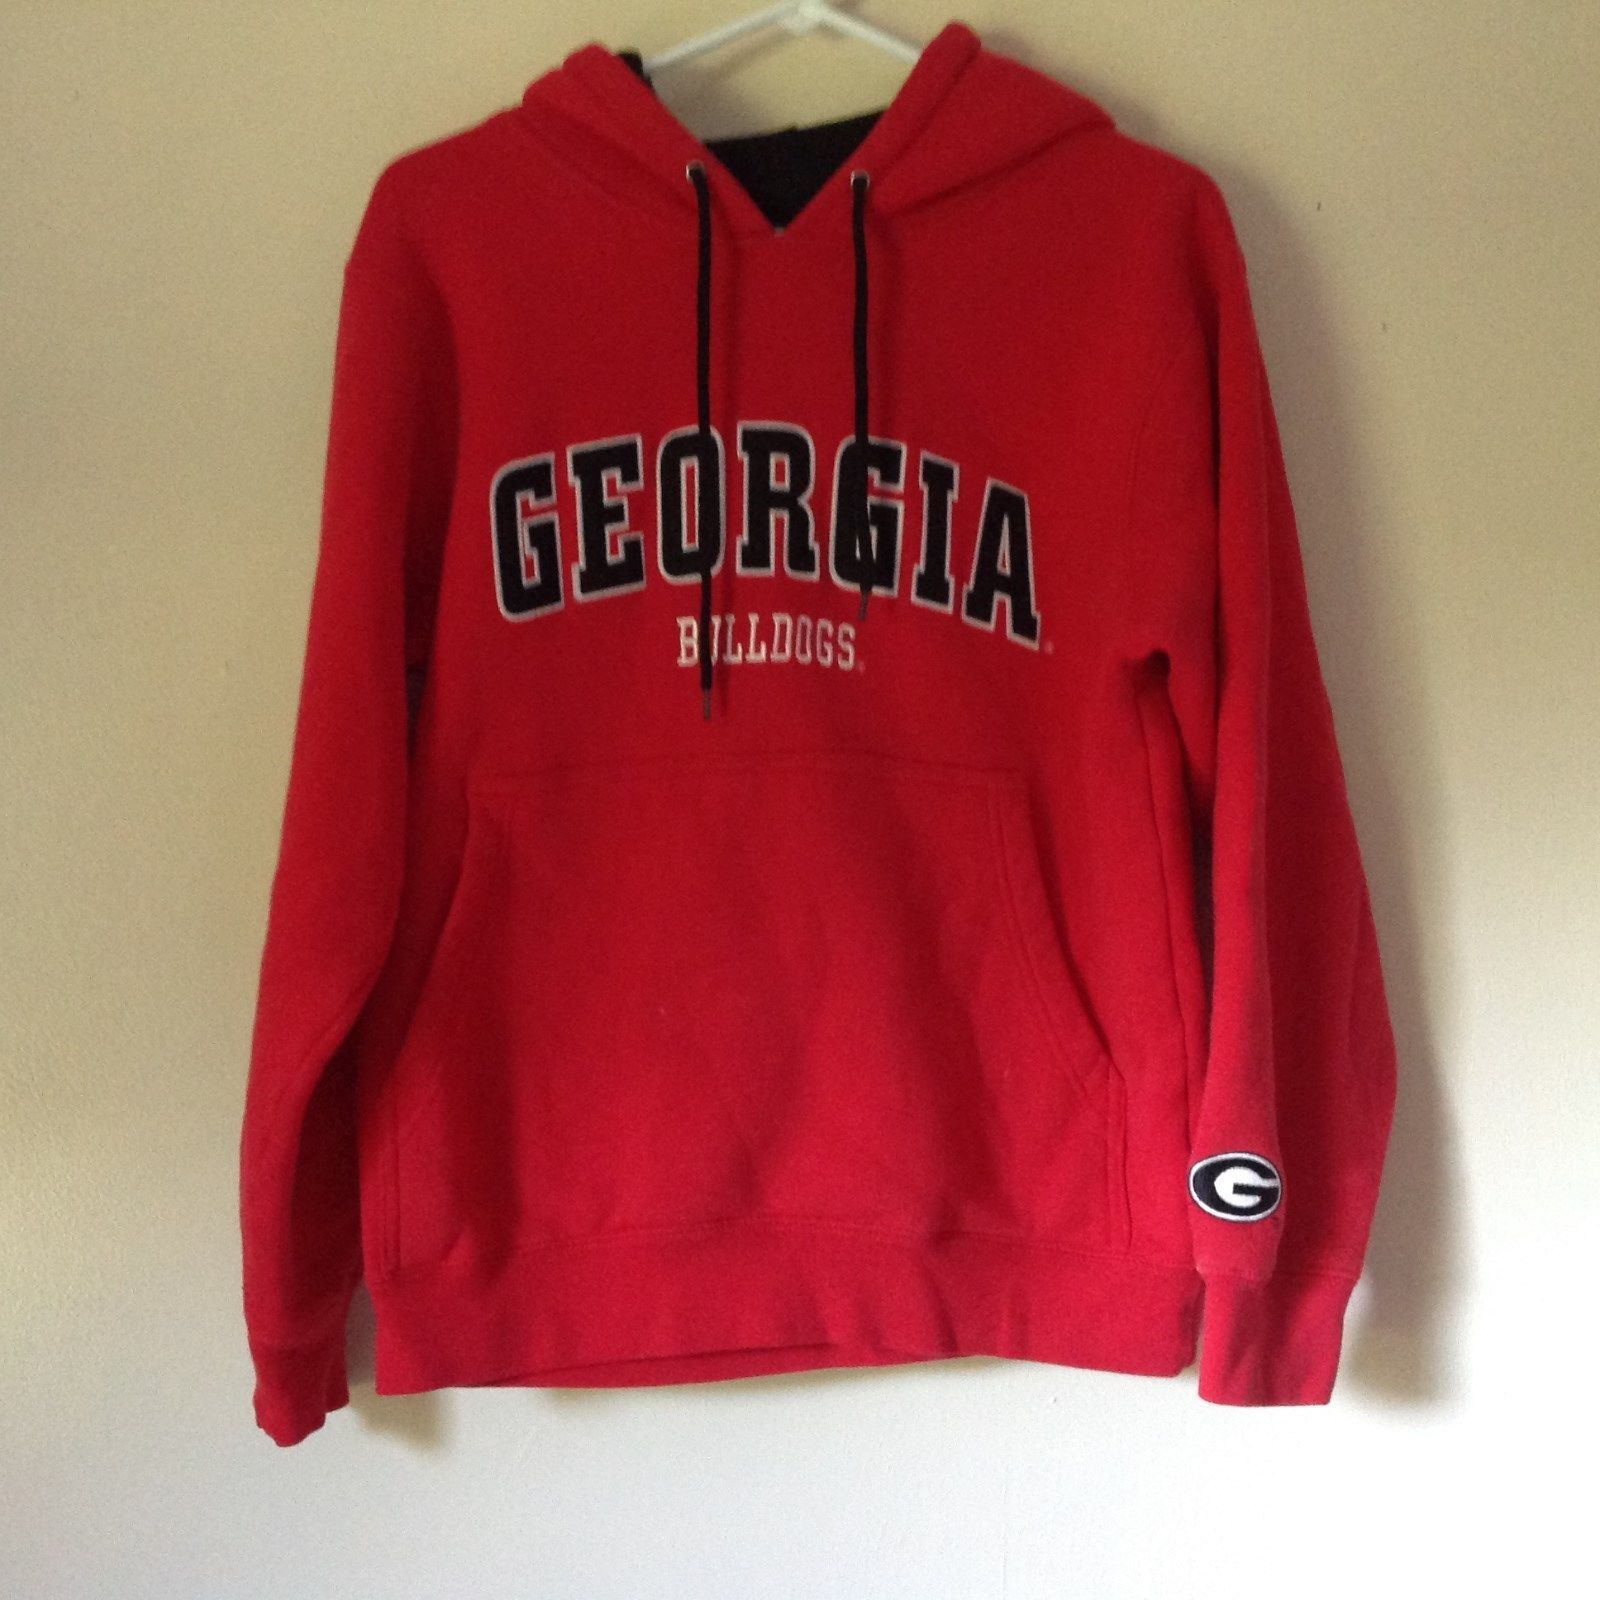 Georgia Bulldogs Red Hoodie Sweatshirt Team Edition Apparel Sizes XS